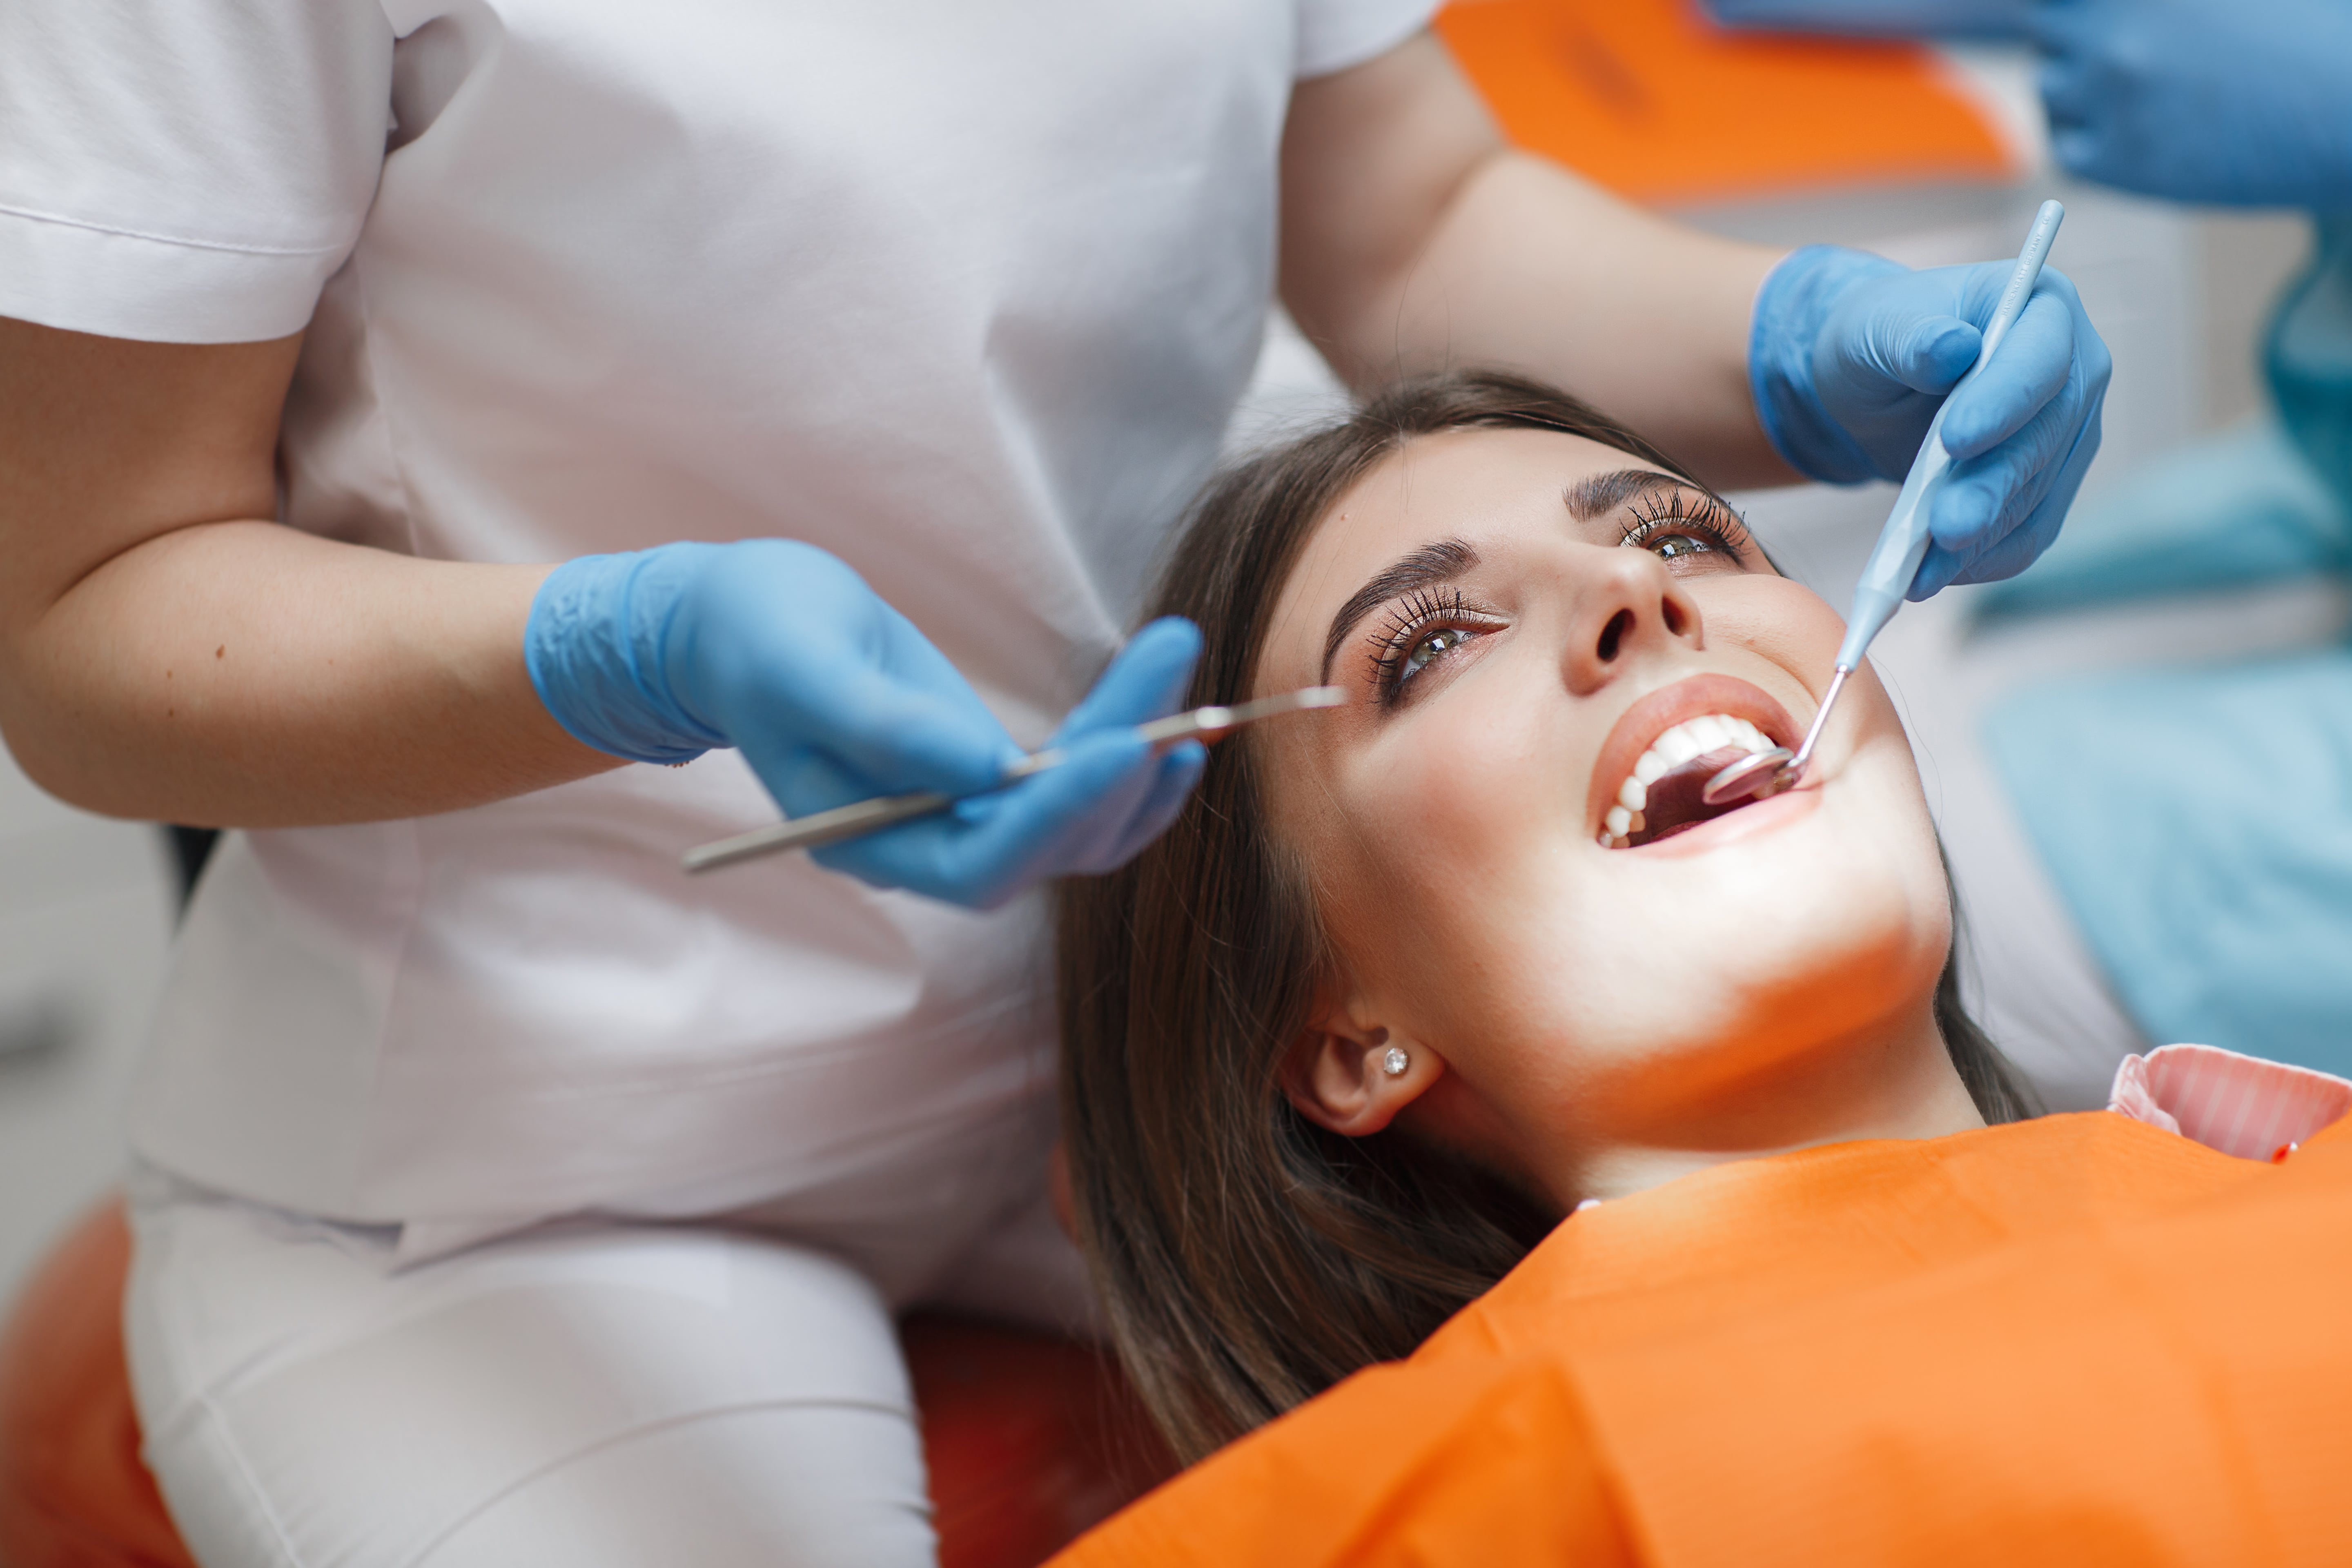 Cosmetic Dentistry Melbourne: What is the Reason To Go For Teeth Straightening Treatment?